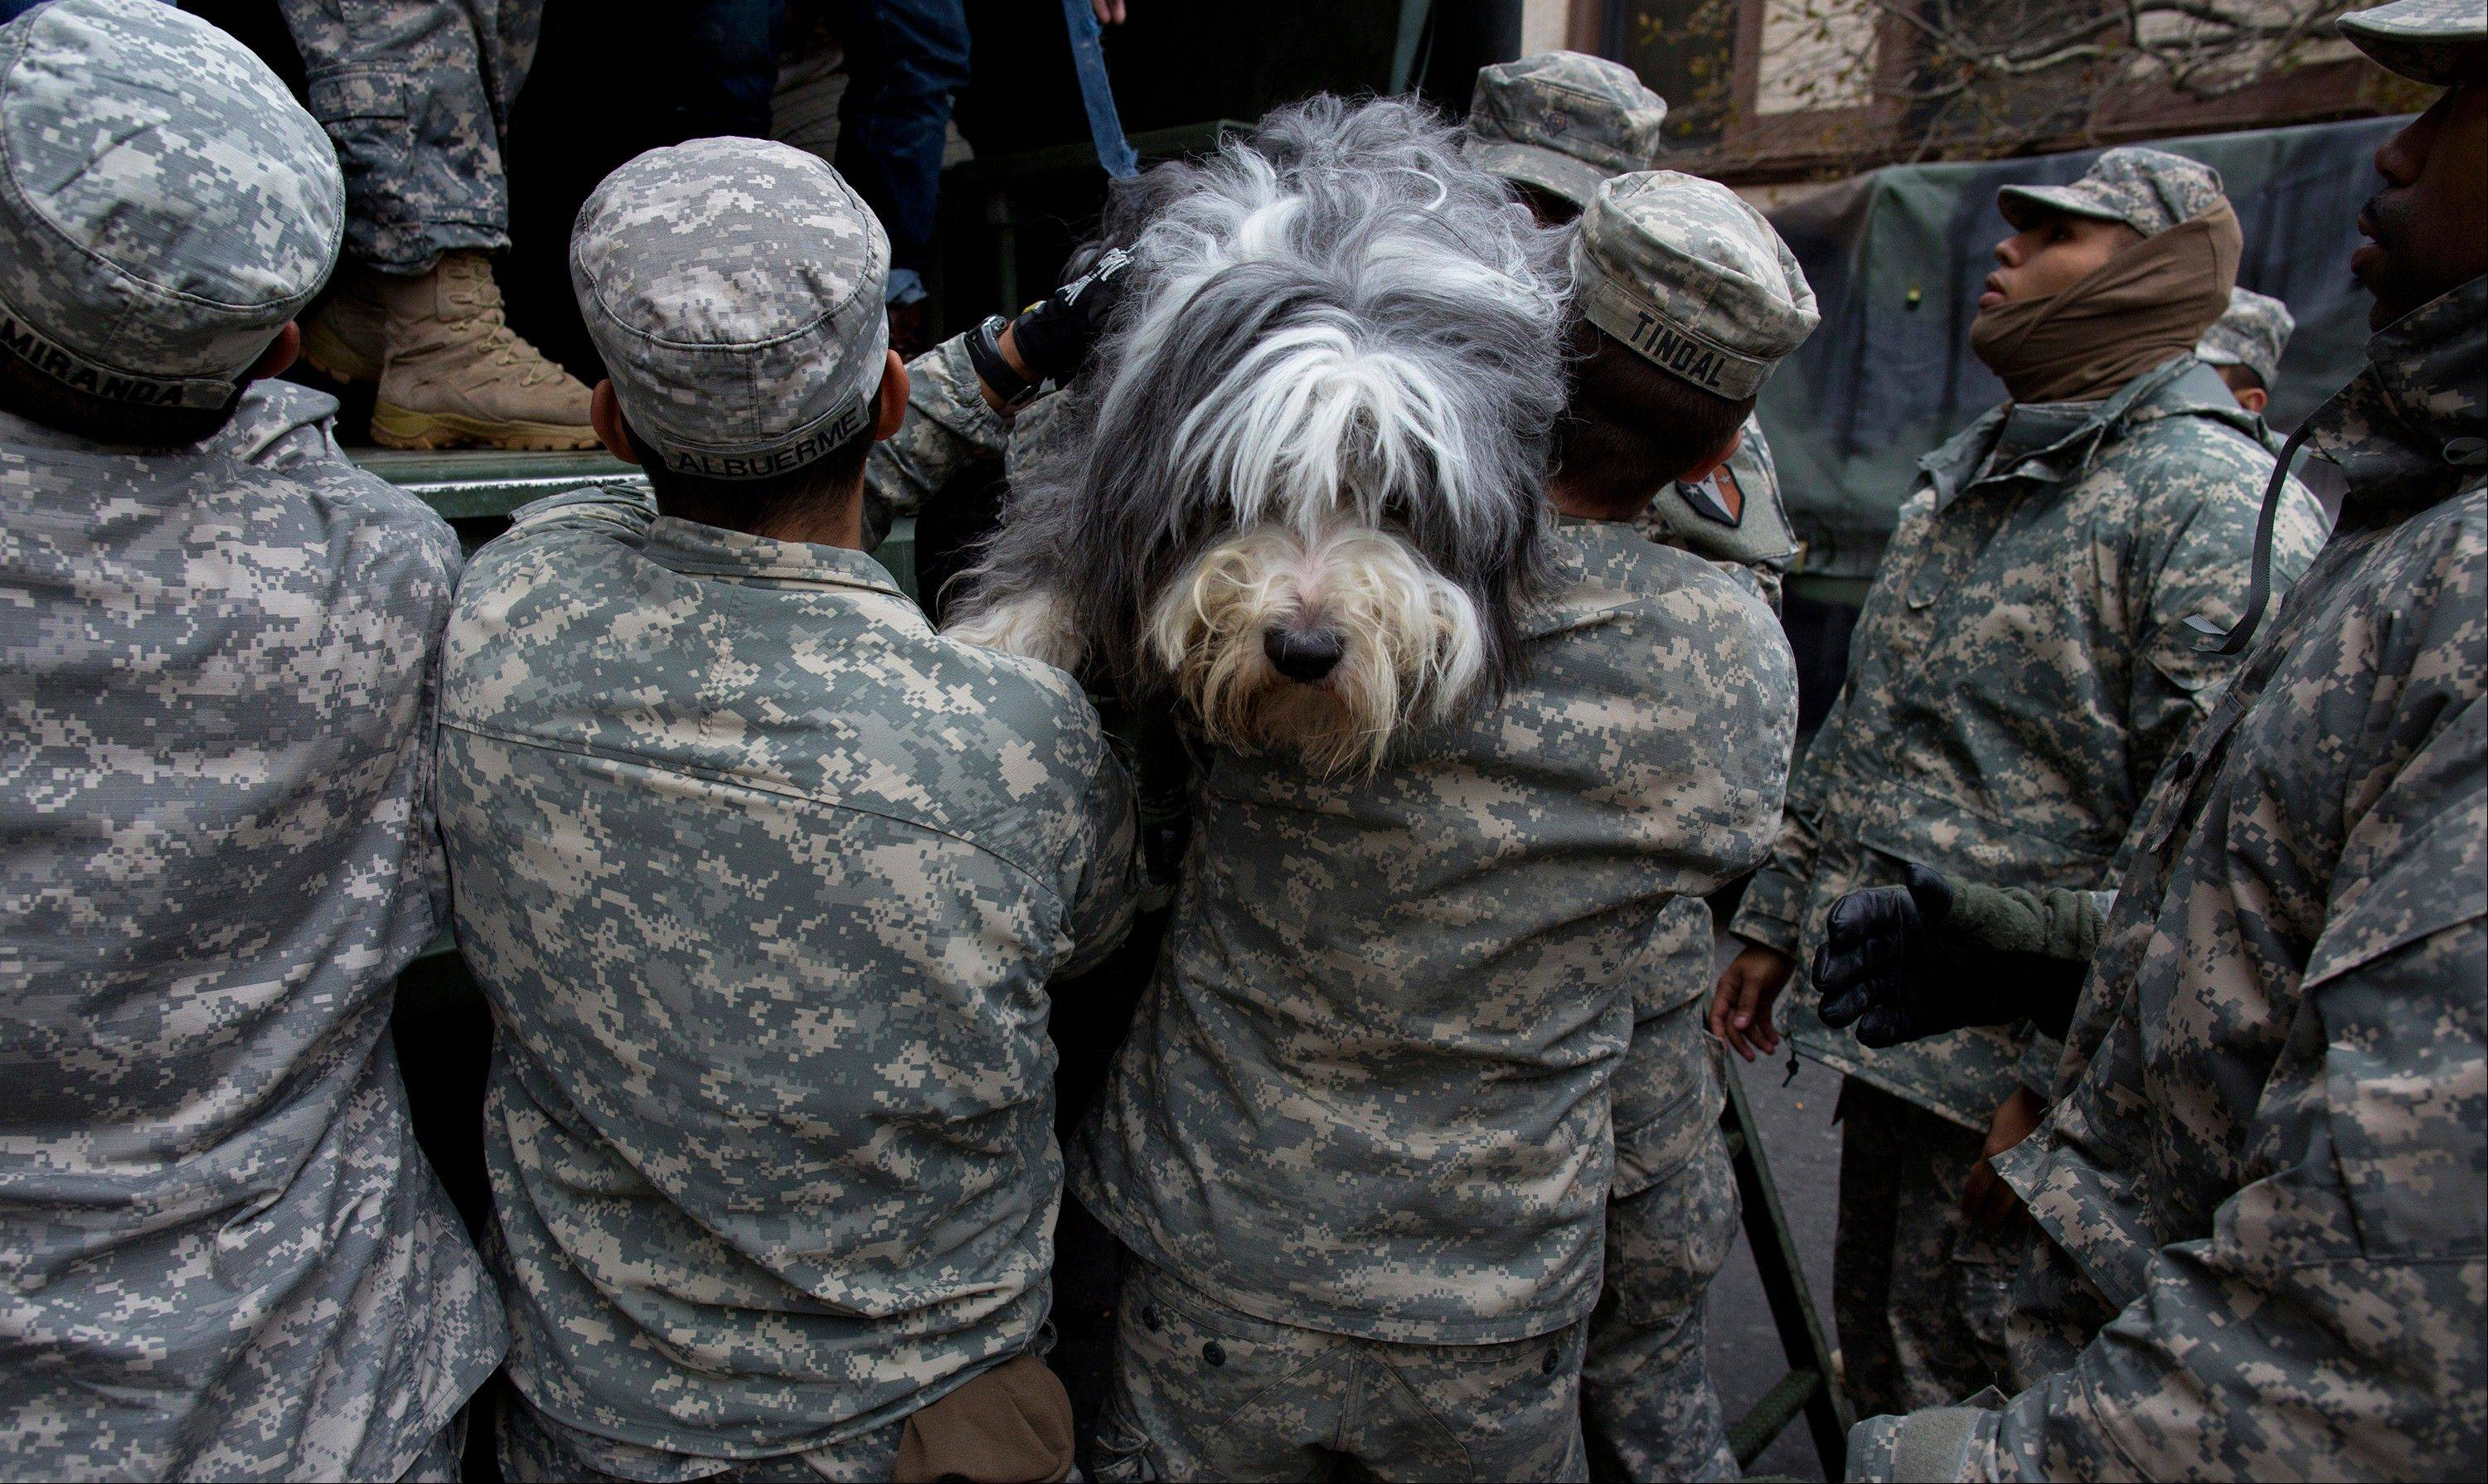 A dog named Shaggy is handed from a National Guard truck to National Guard personnel after the dog and his owner left a flooded building in Hoboken, N.J., in the wake of superstorm Sandy.